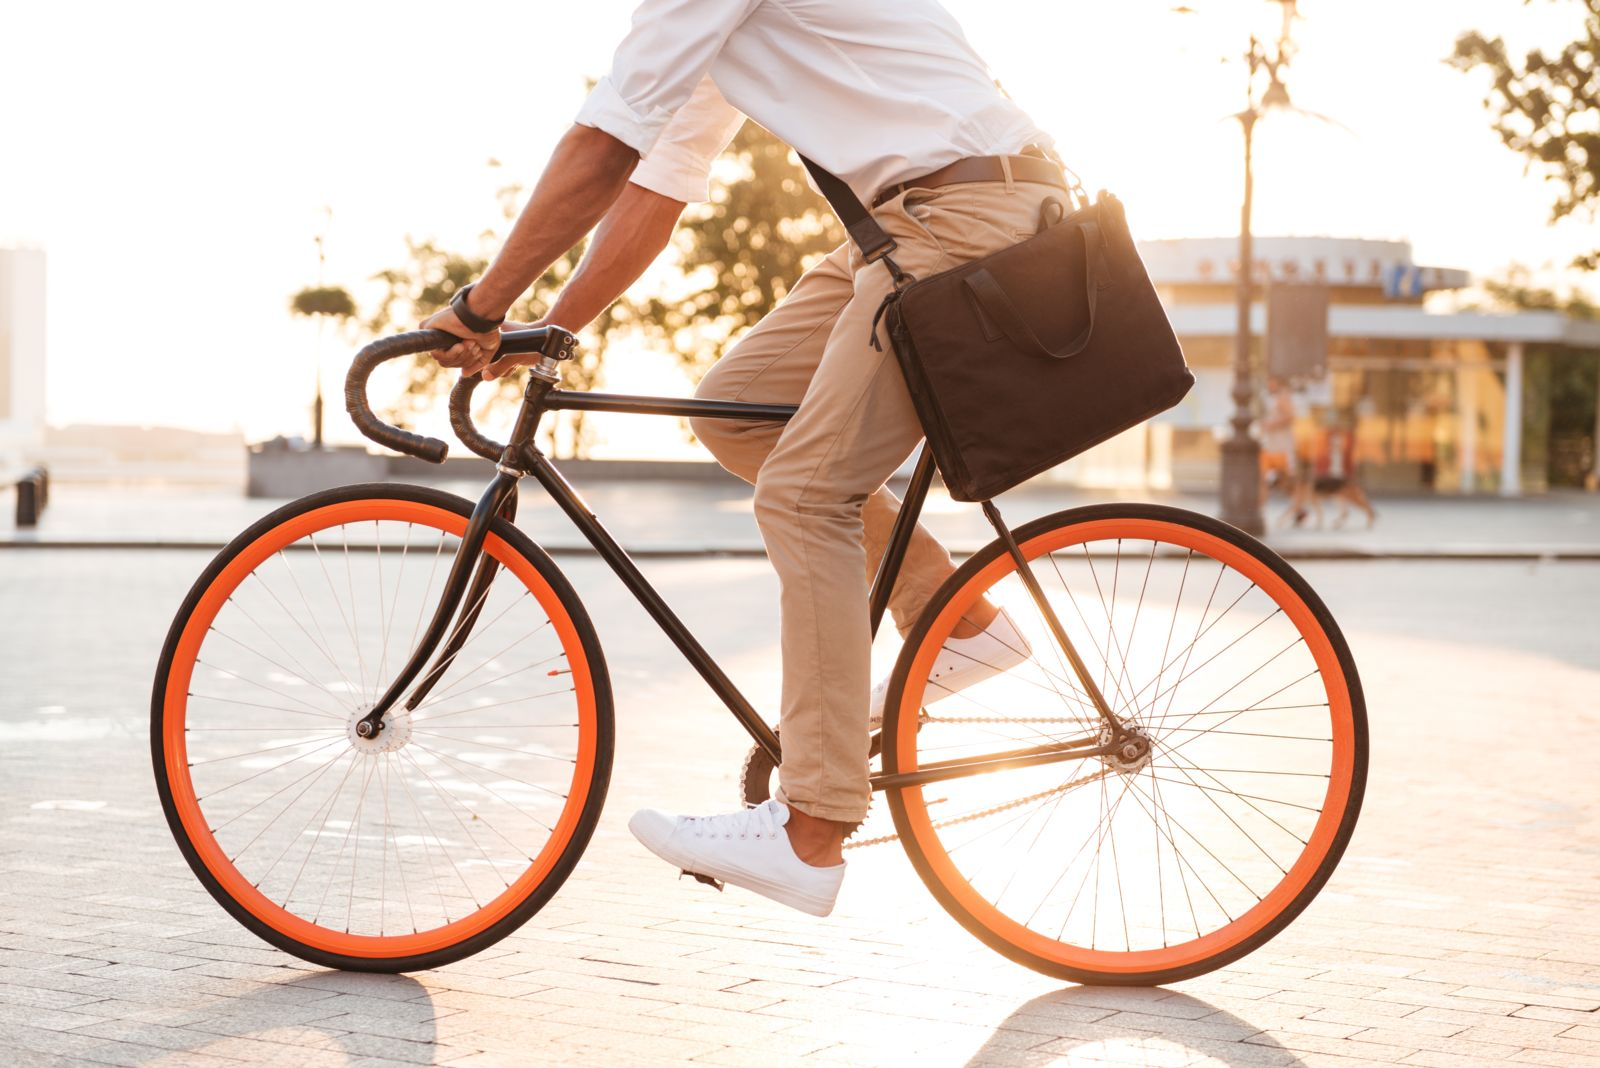 Raleigh Bicycle Accident Injury Attorneys in North Carolina